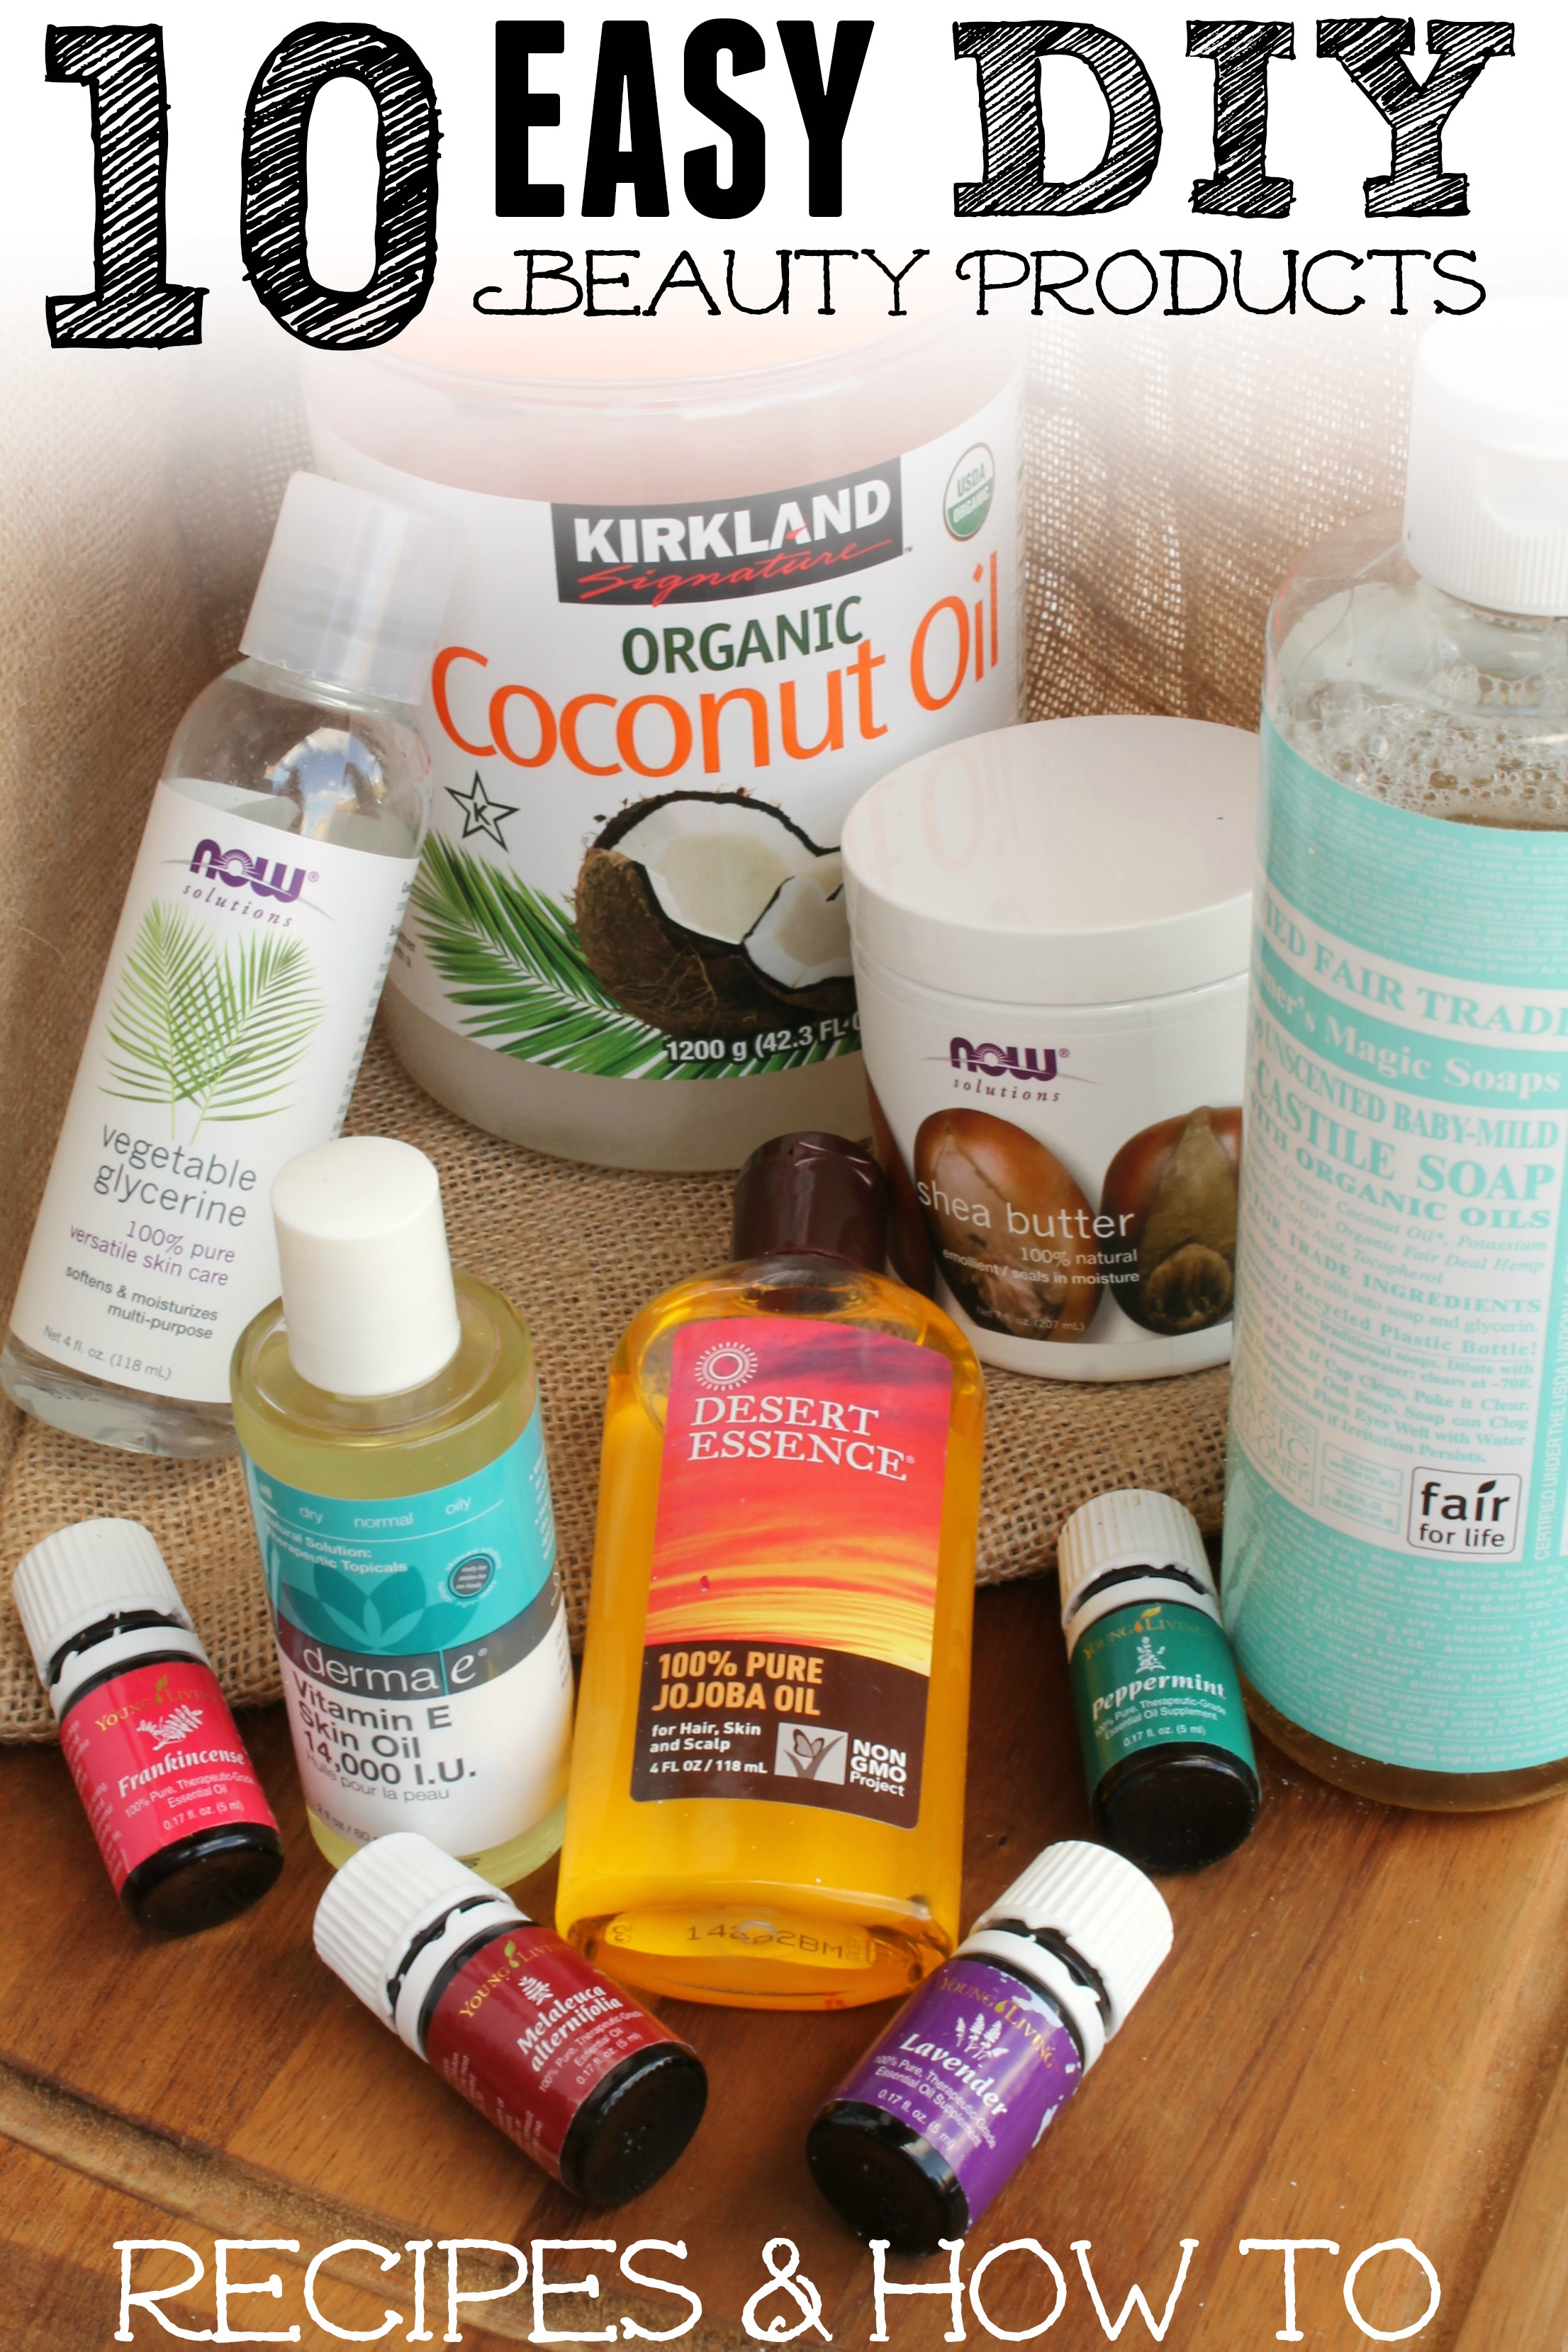 10 Easy DIY Natural Beauty Products - Lauren Greutman